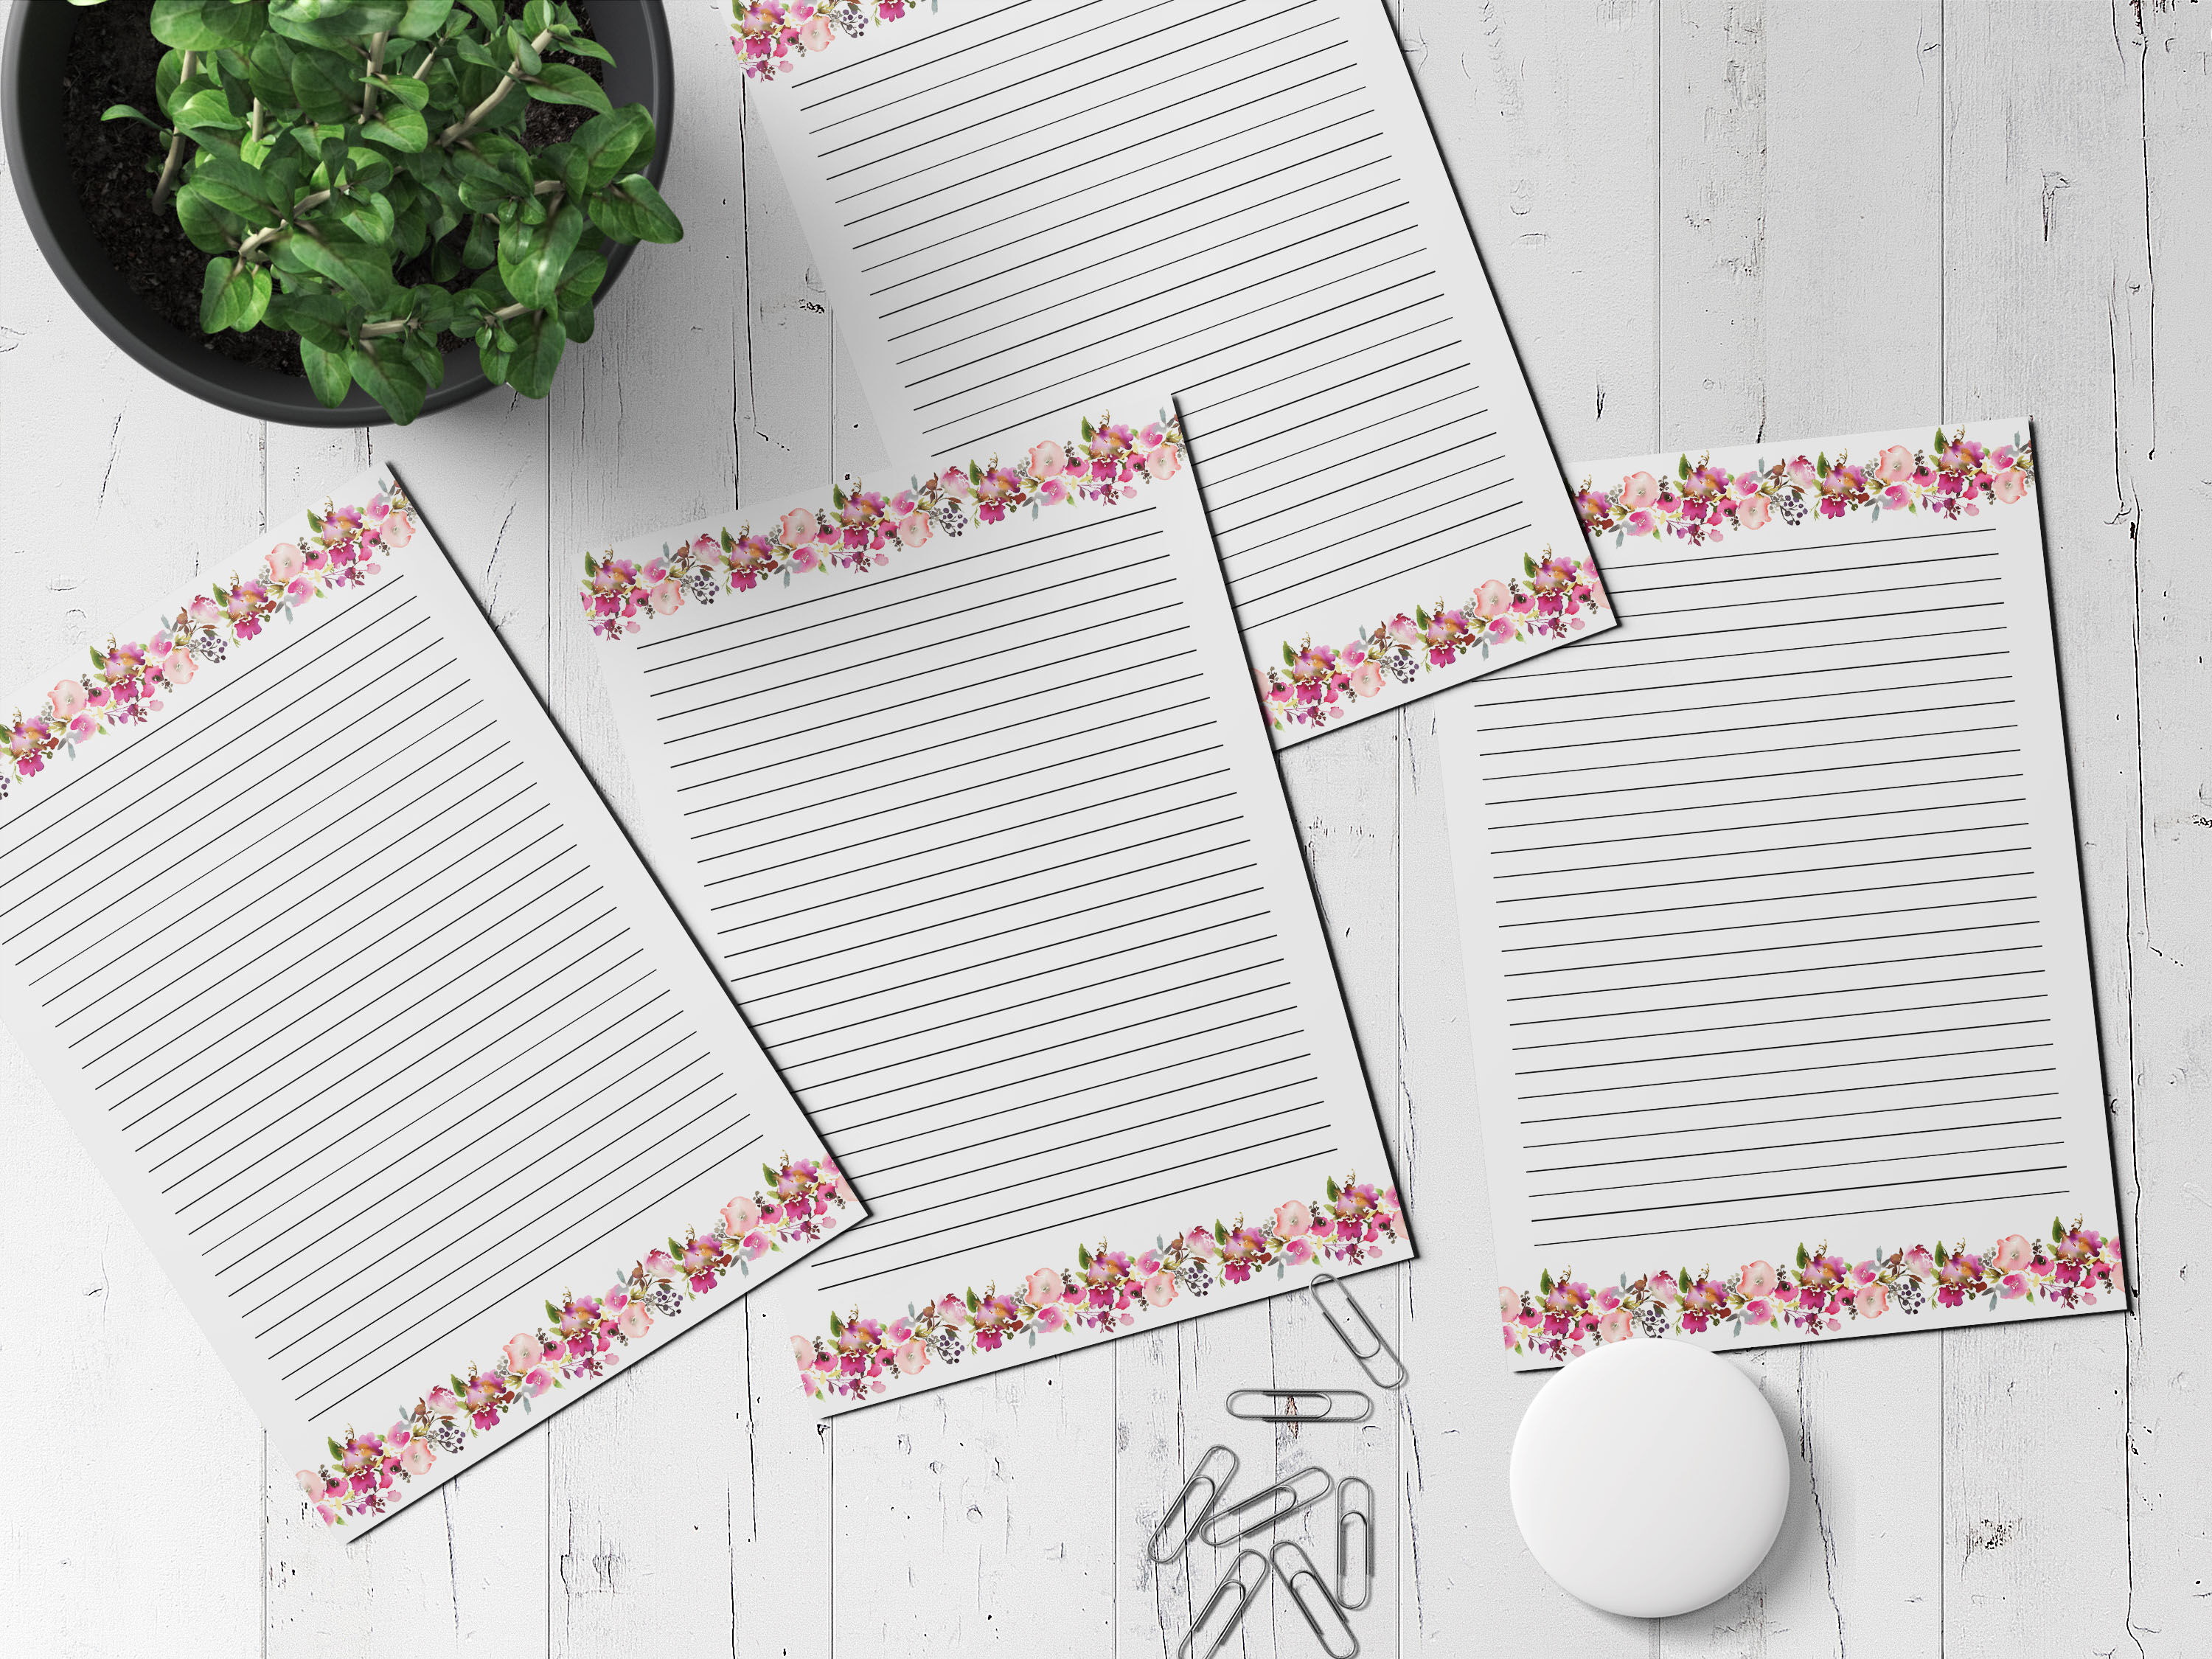 Floral Printable Stationery Lined Digital Note Paper By Old Continent Design Thehungryjpeg Com